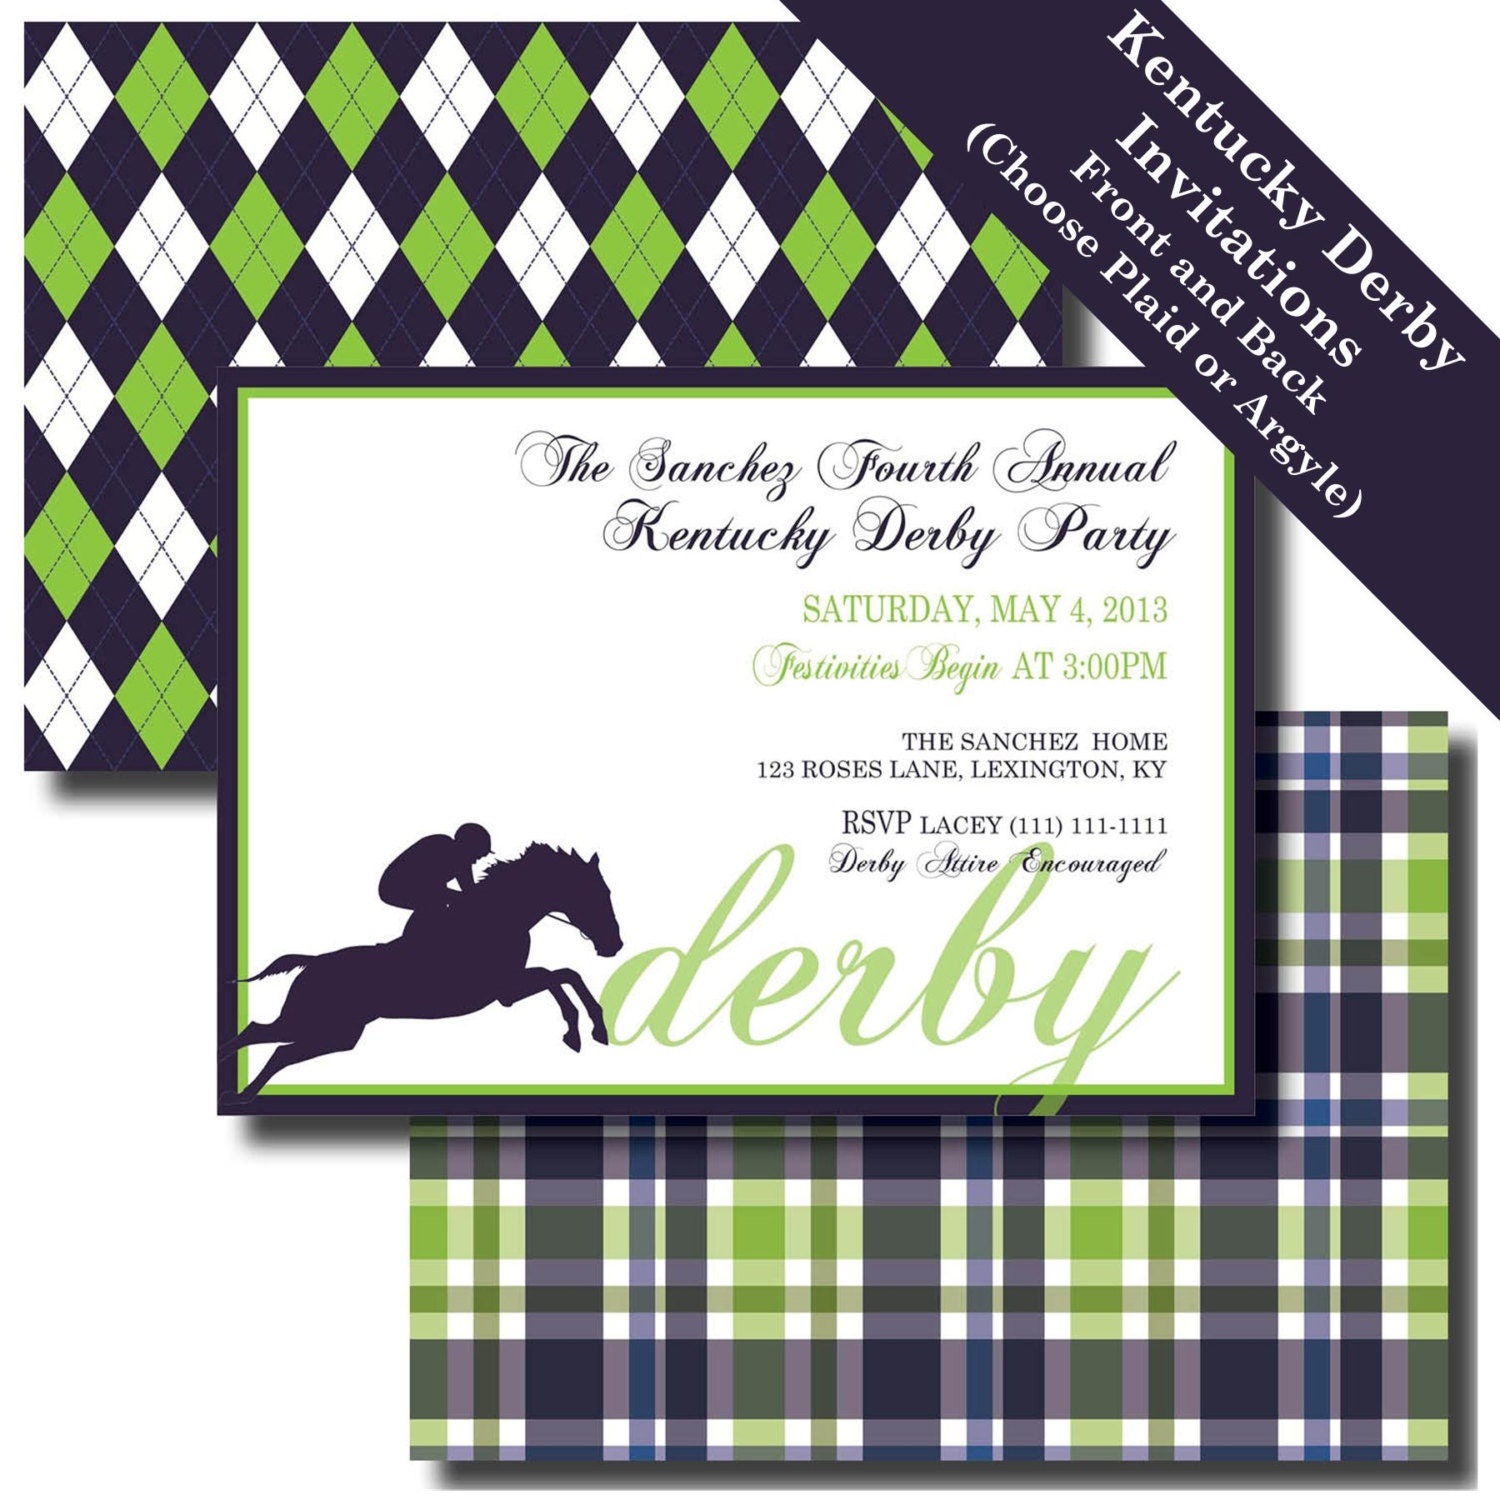 Kentucky Derby Party Kentucky Derby Invitation Kentucky